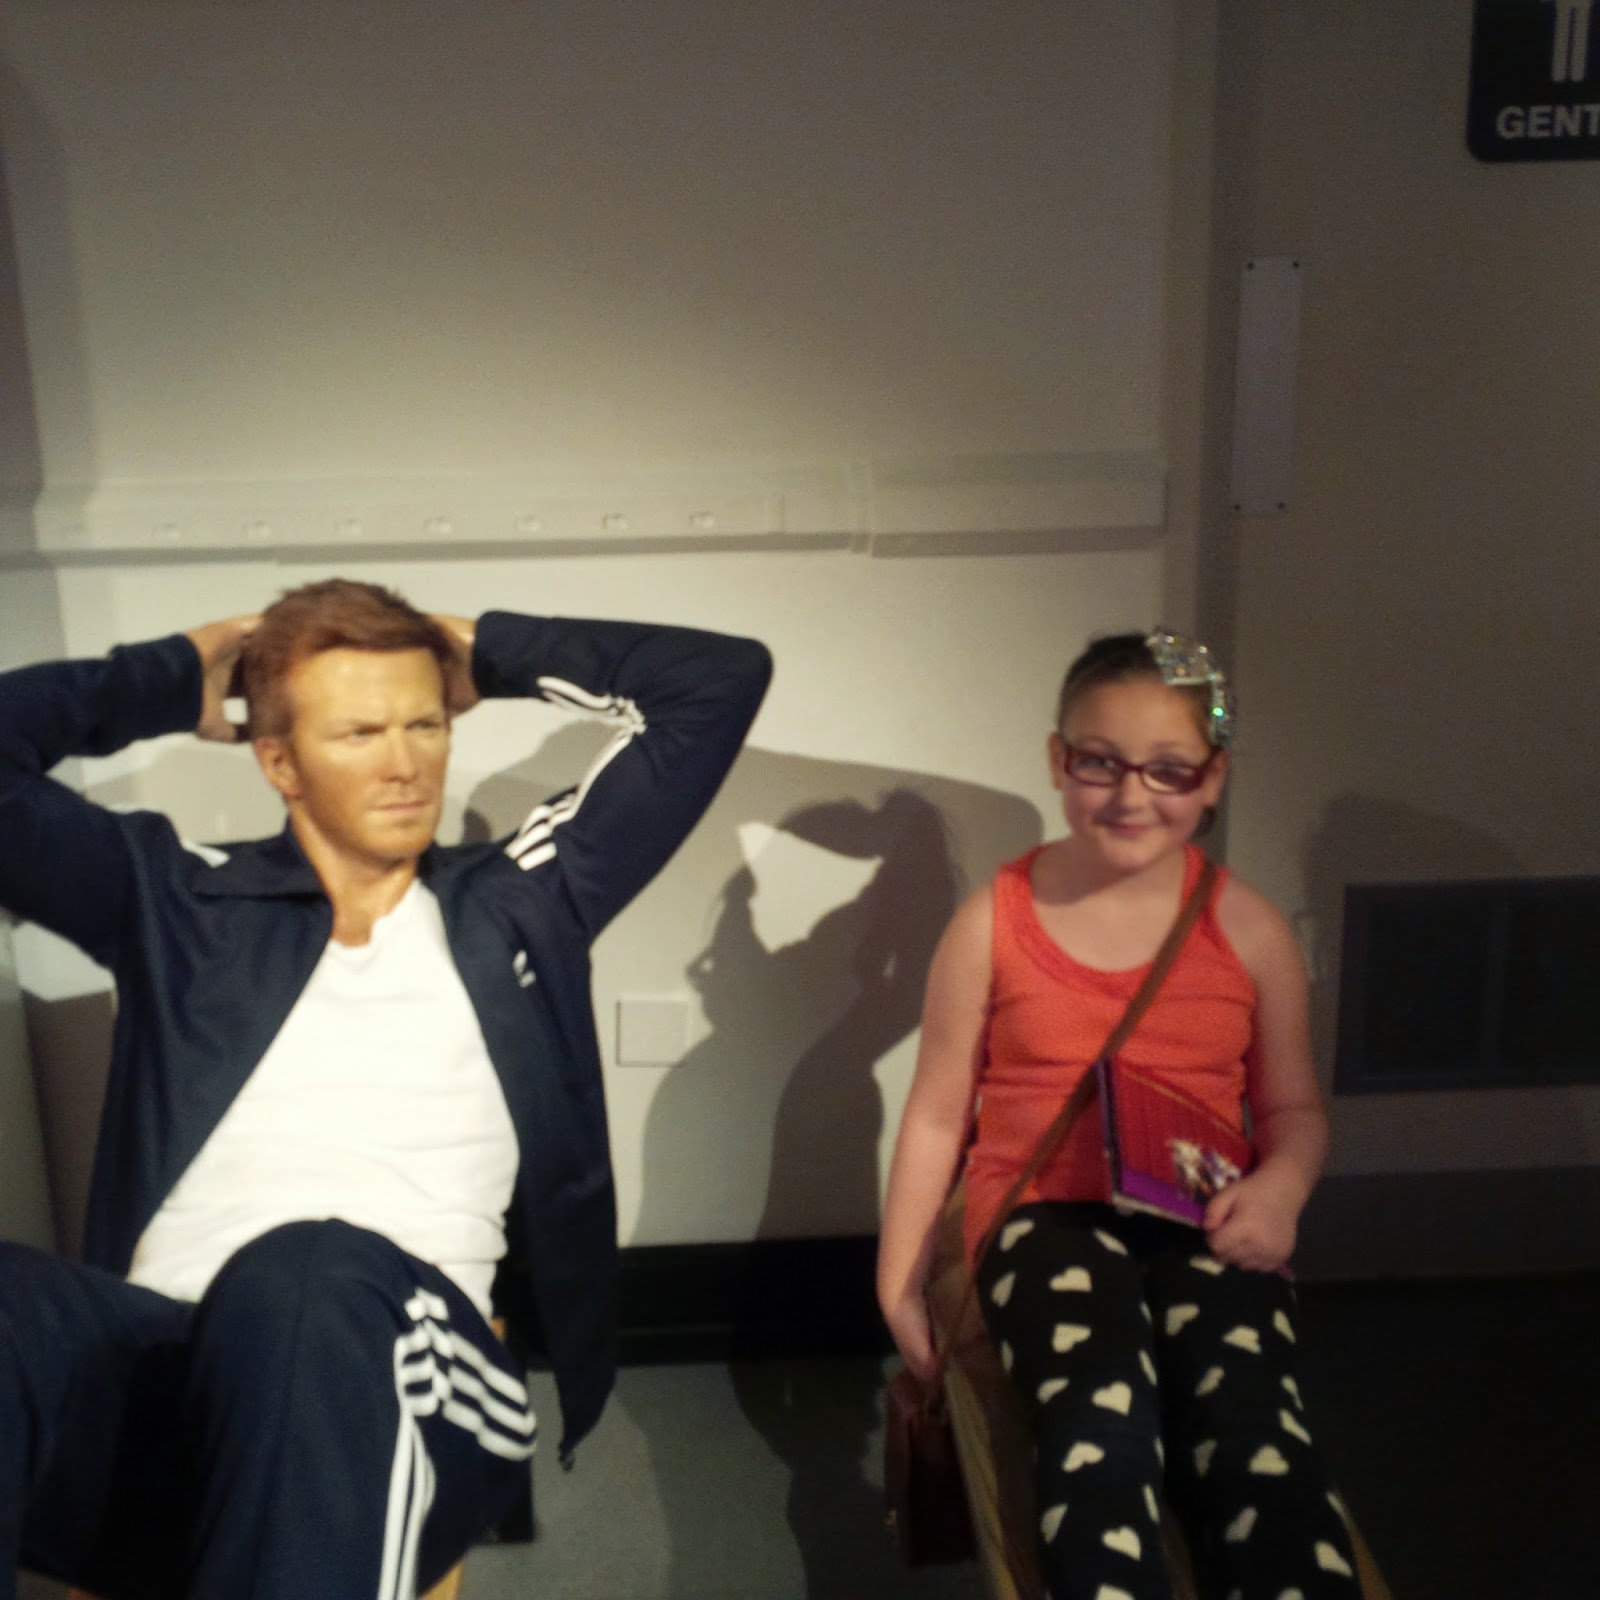 olivia with the david beckham waxwork